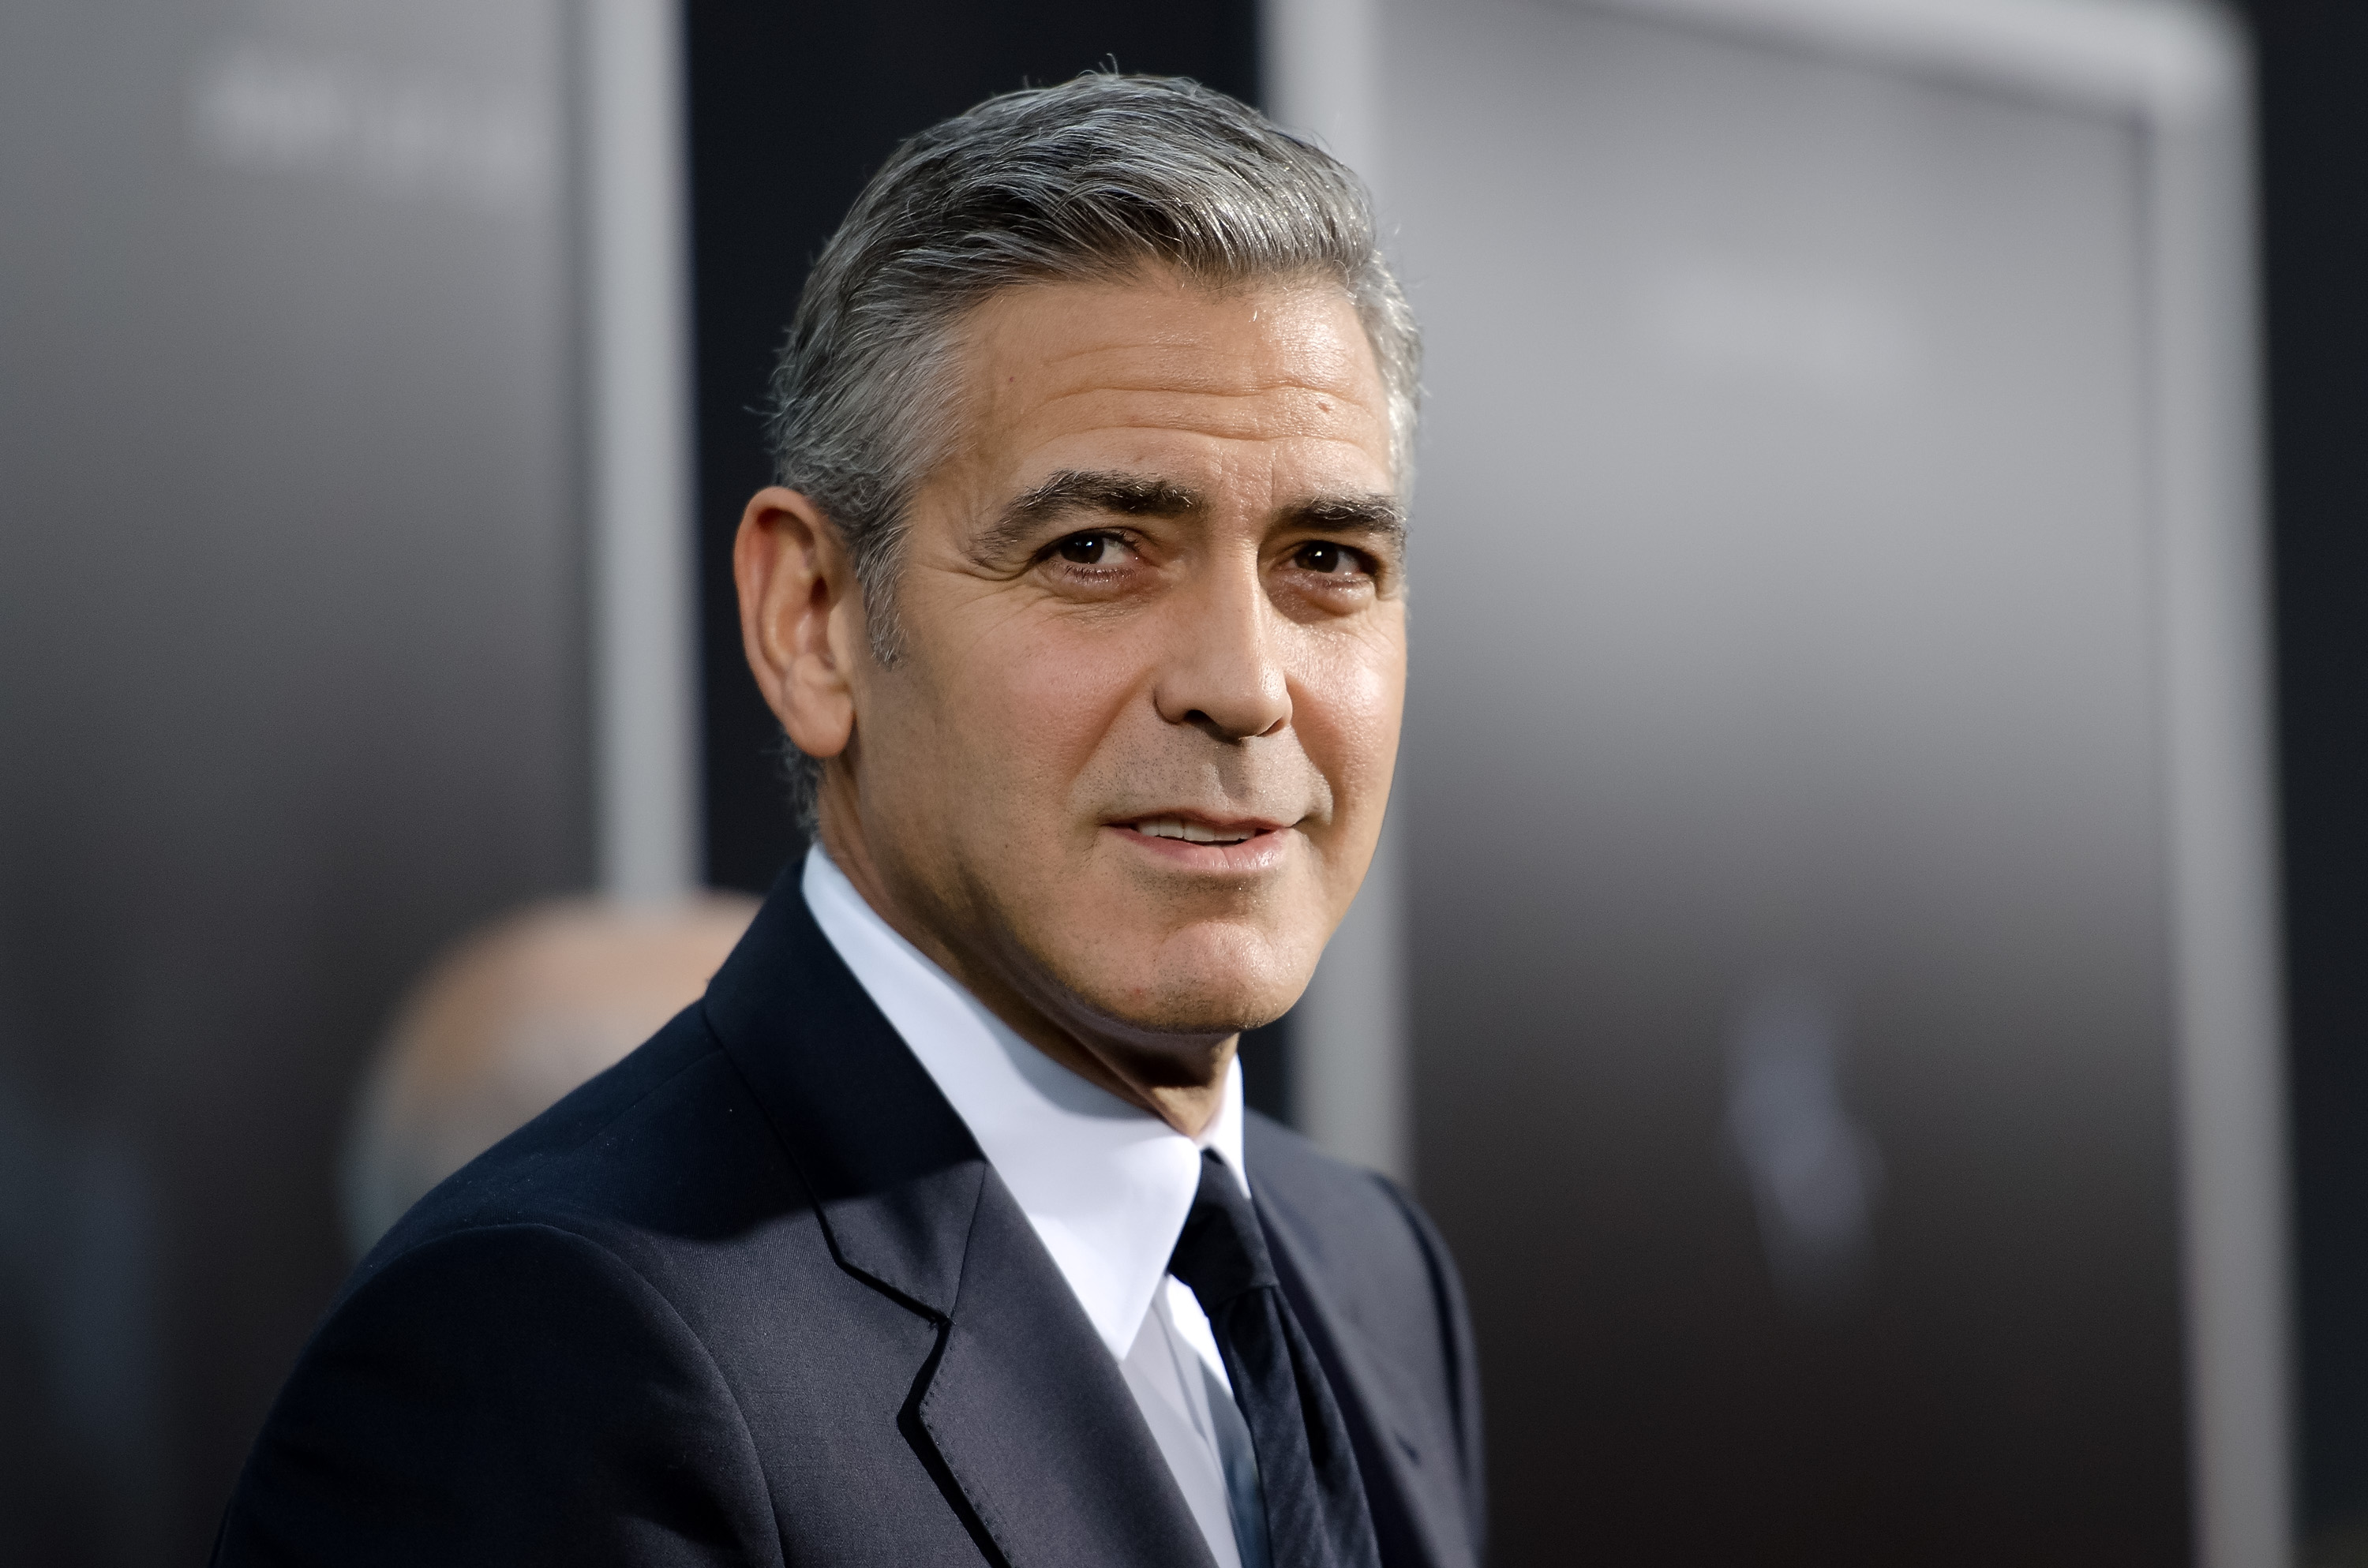 HD George Clooney Wallpapers and Photos HD Celebrities Wallpapers 3000x1987